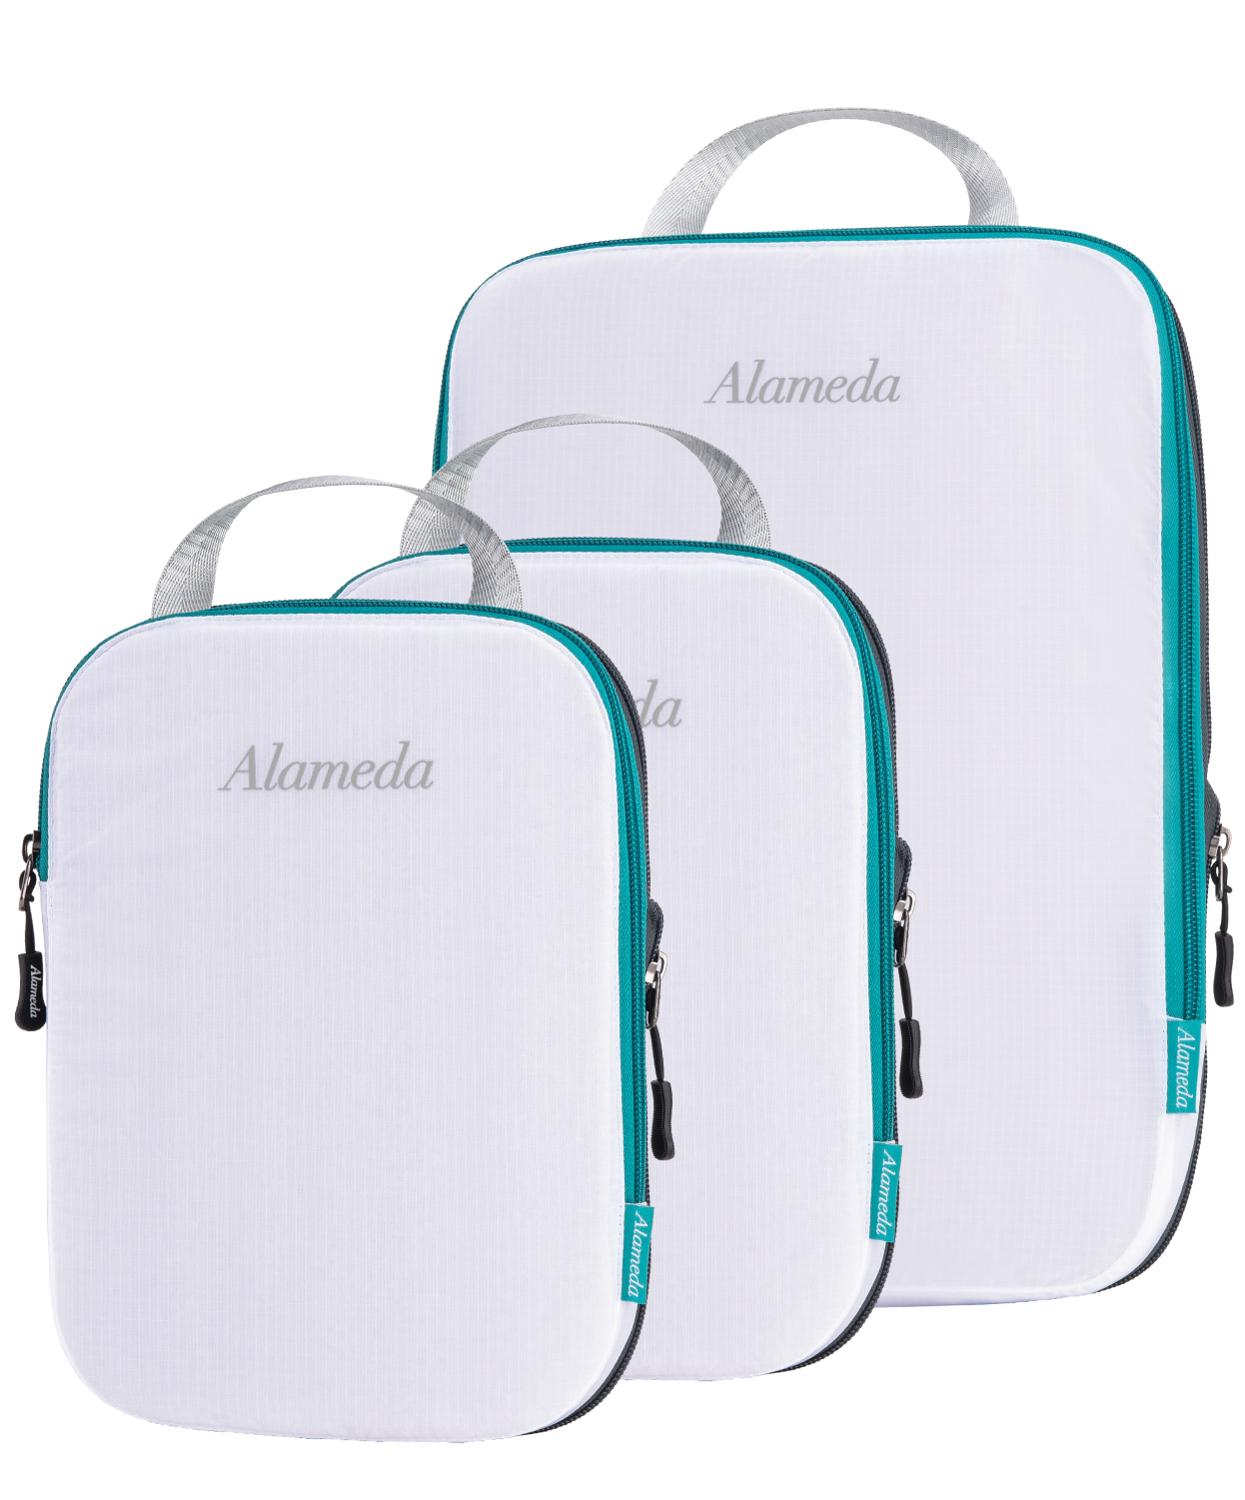 New Diaper Bag Inner Container Travel Packing Organizers 3pcs Compression Packing Cubes For Carryon Luggage Baby Care Outdoors